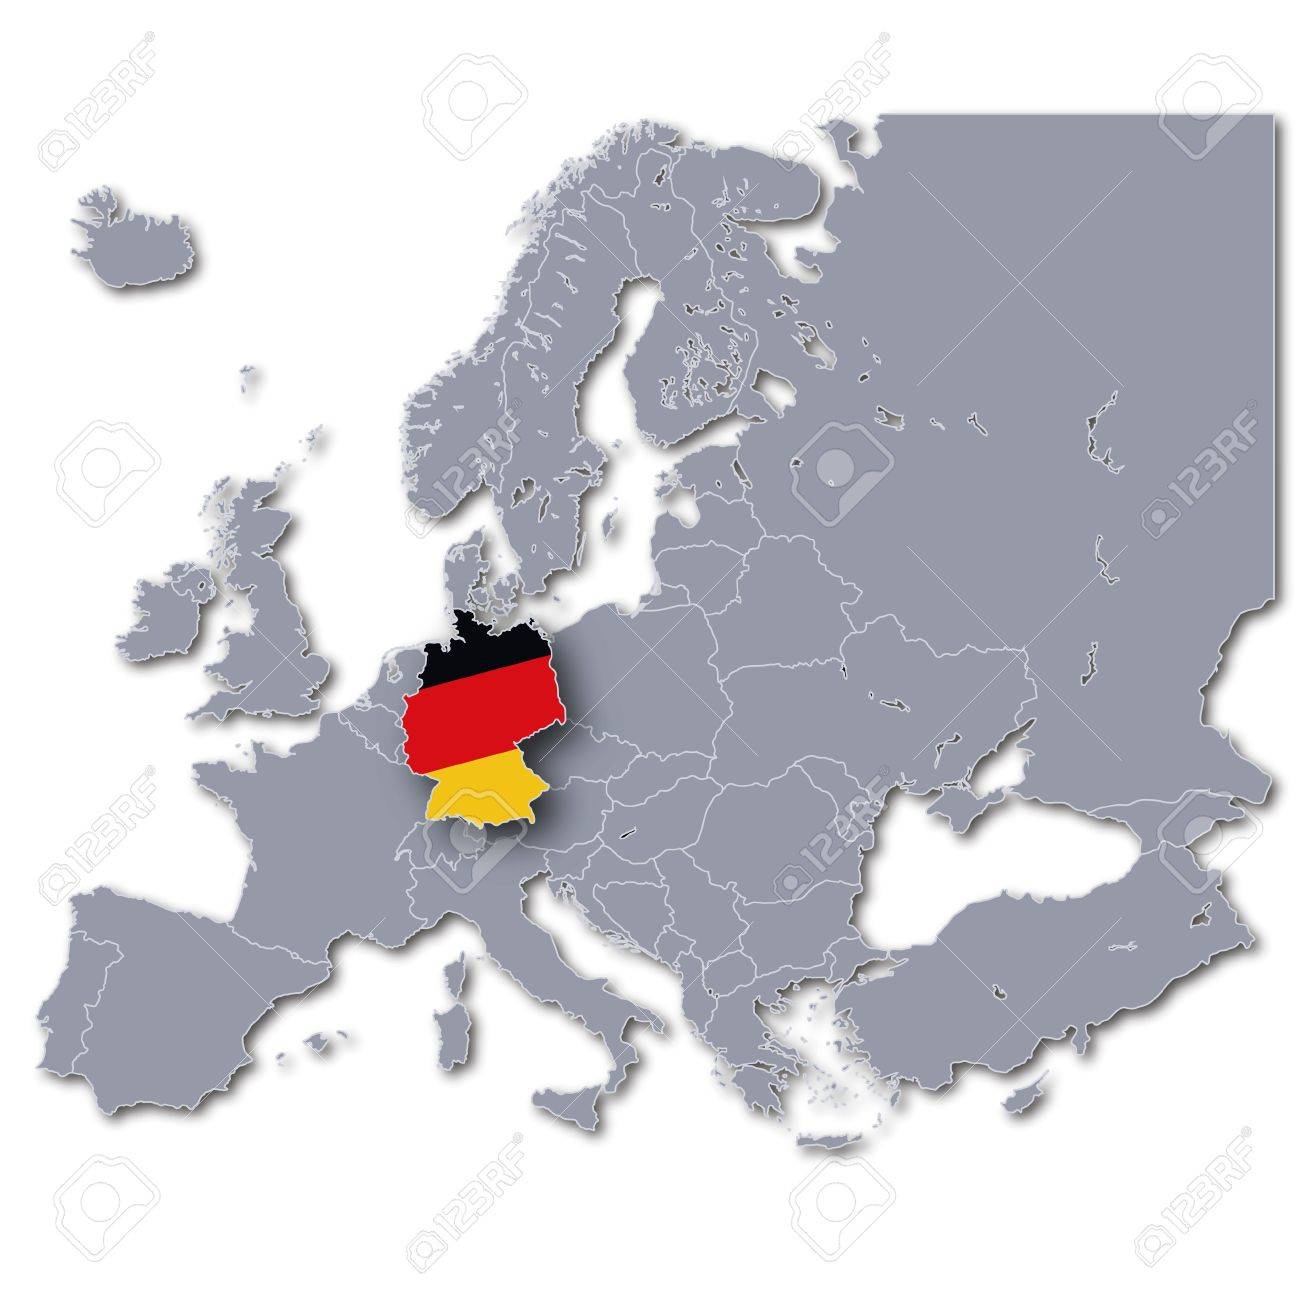 Map Of Europe With Germany Highlighted.Europe Map Germany